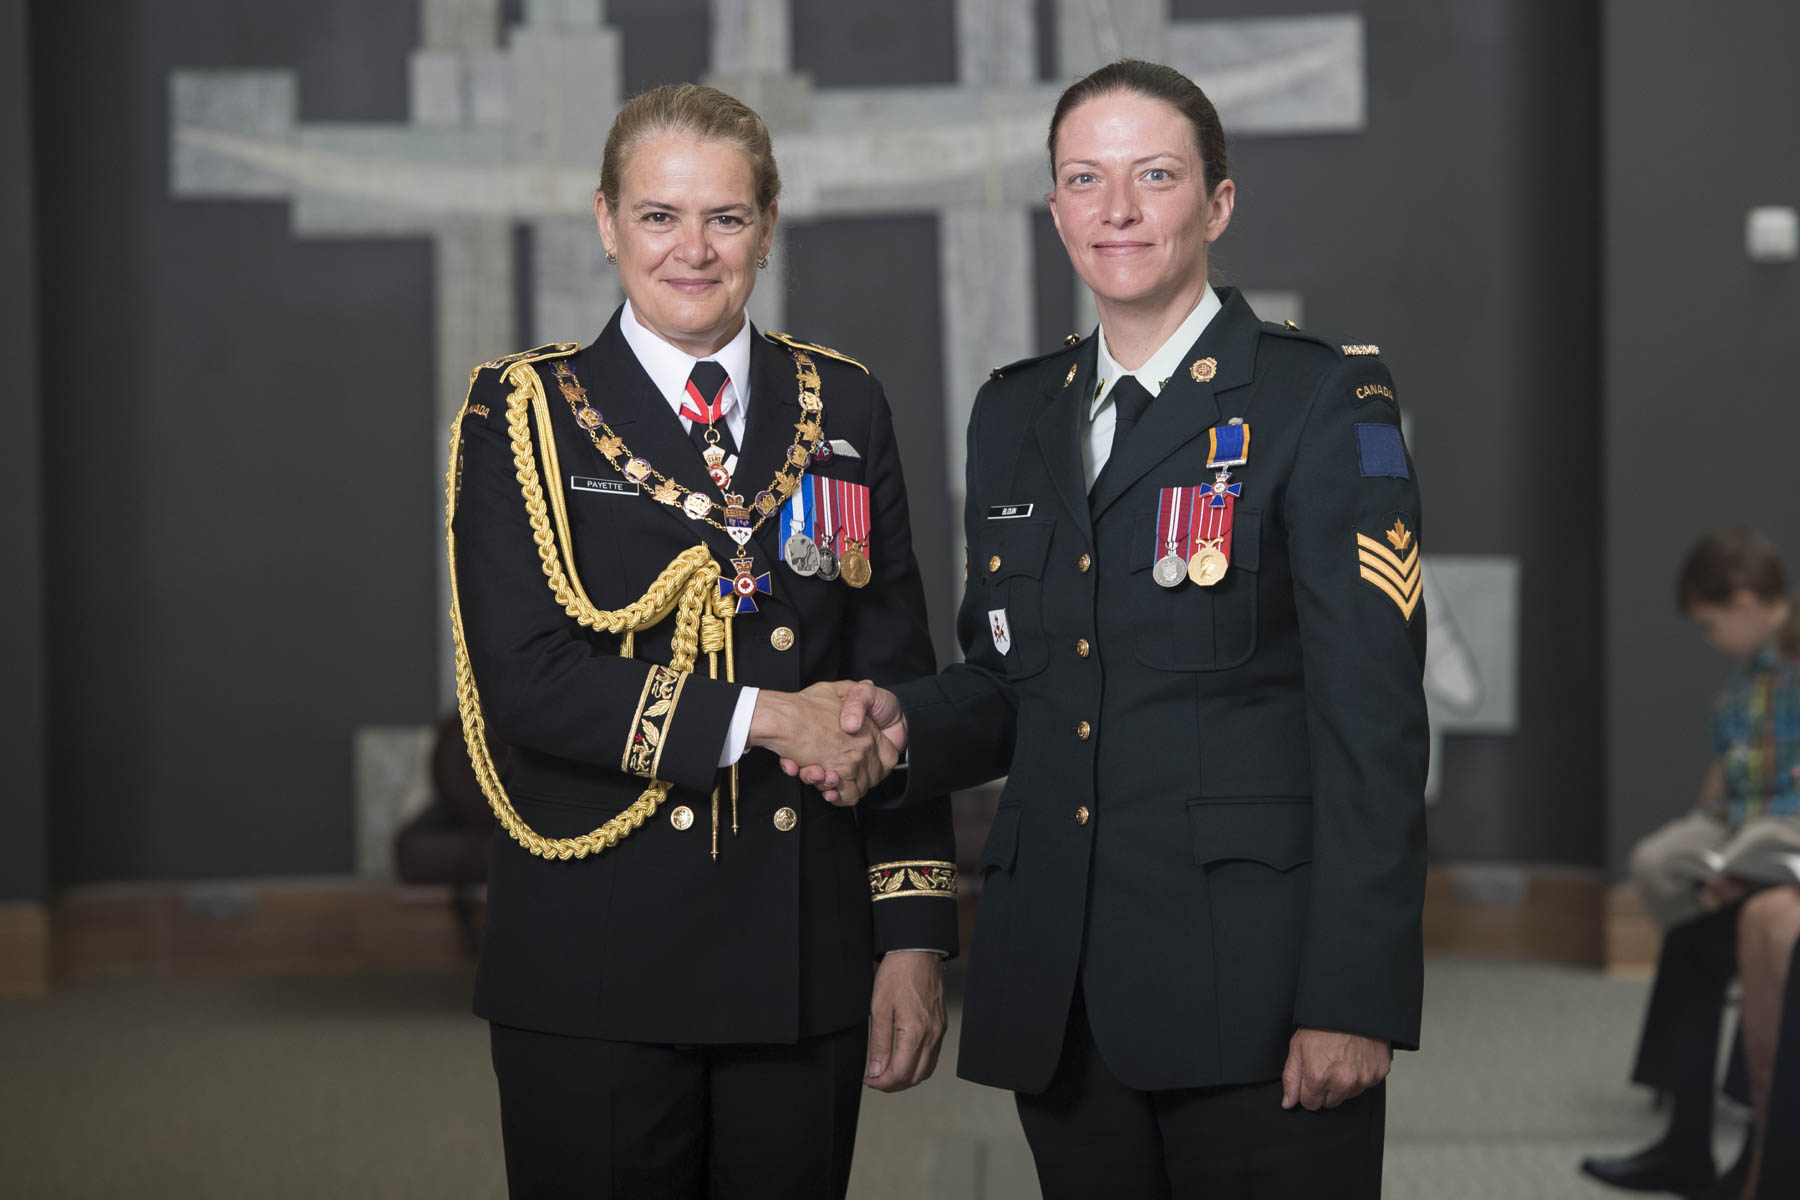 Her Excellency bestowed the honour of Member of the Order of Military Merit upon Sergeant Marie Stella Thérèse Geneviève Blouin, M.M.M., C.D.